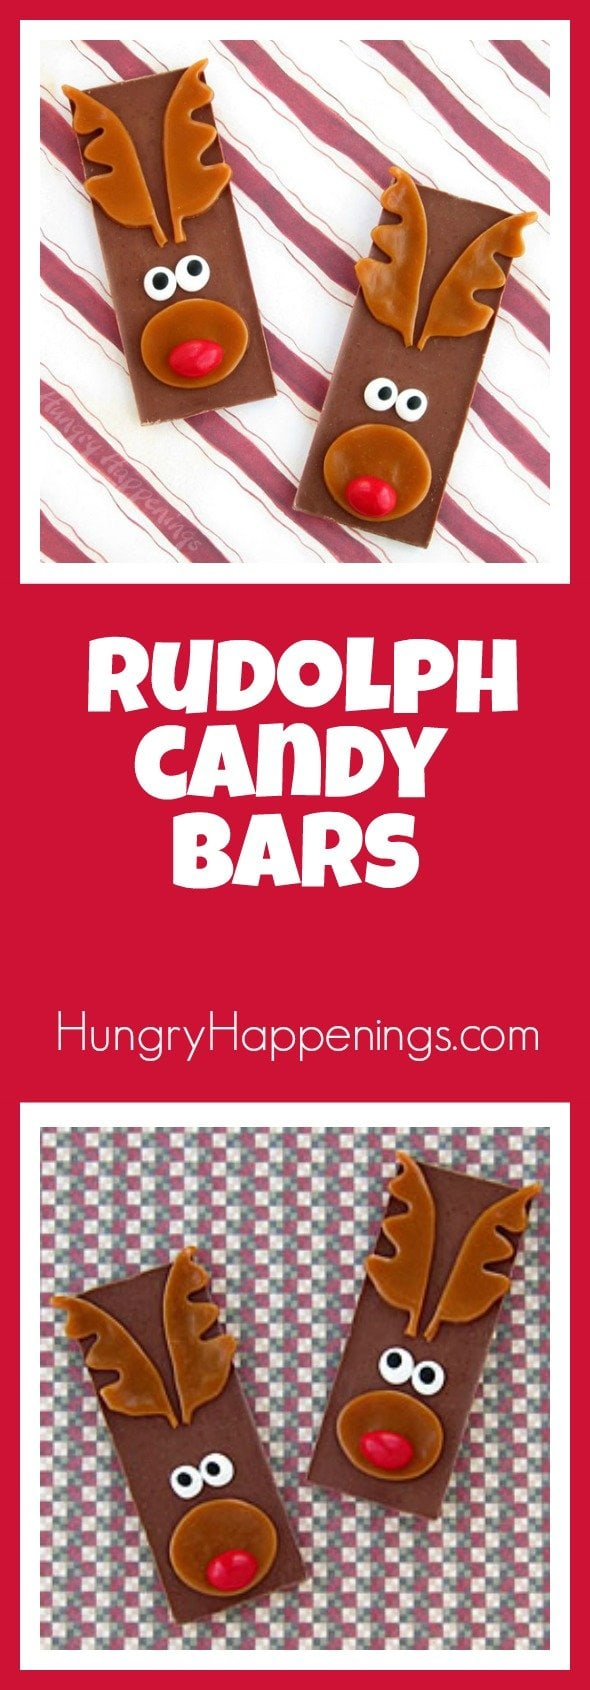 This Christmas, get everyone into a festive mood by transforming ordinary chocolate bars into these Rudolph the Red Nose Reindeer Candy Bars. I guarantee this super easy treat will bring lots of smiles to kids of all ages.